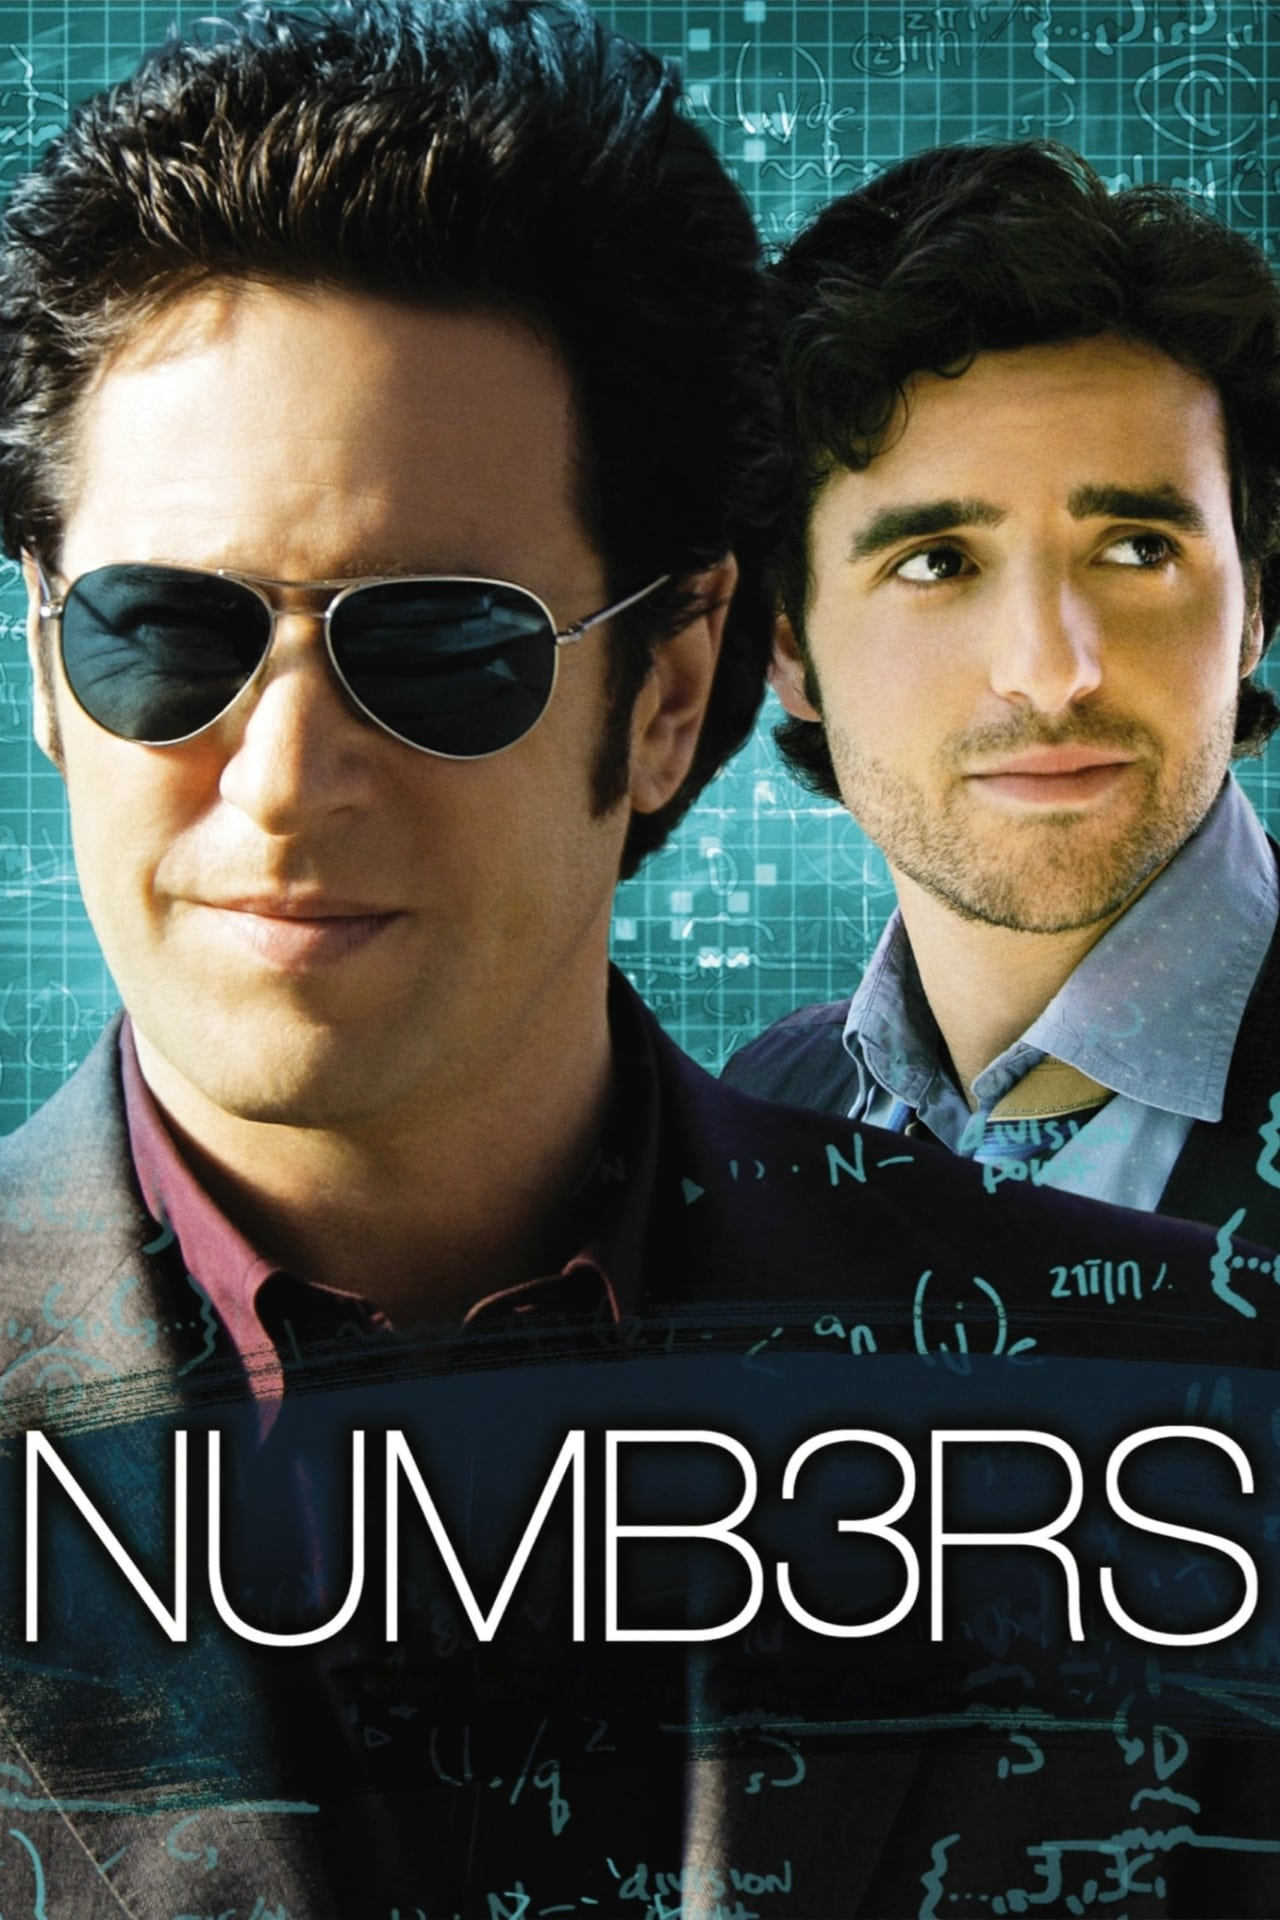 Numb3rs (season 3)